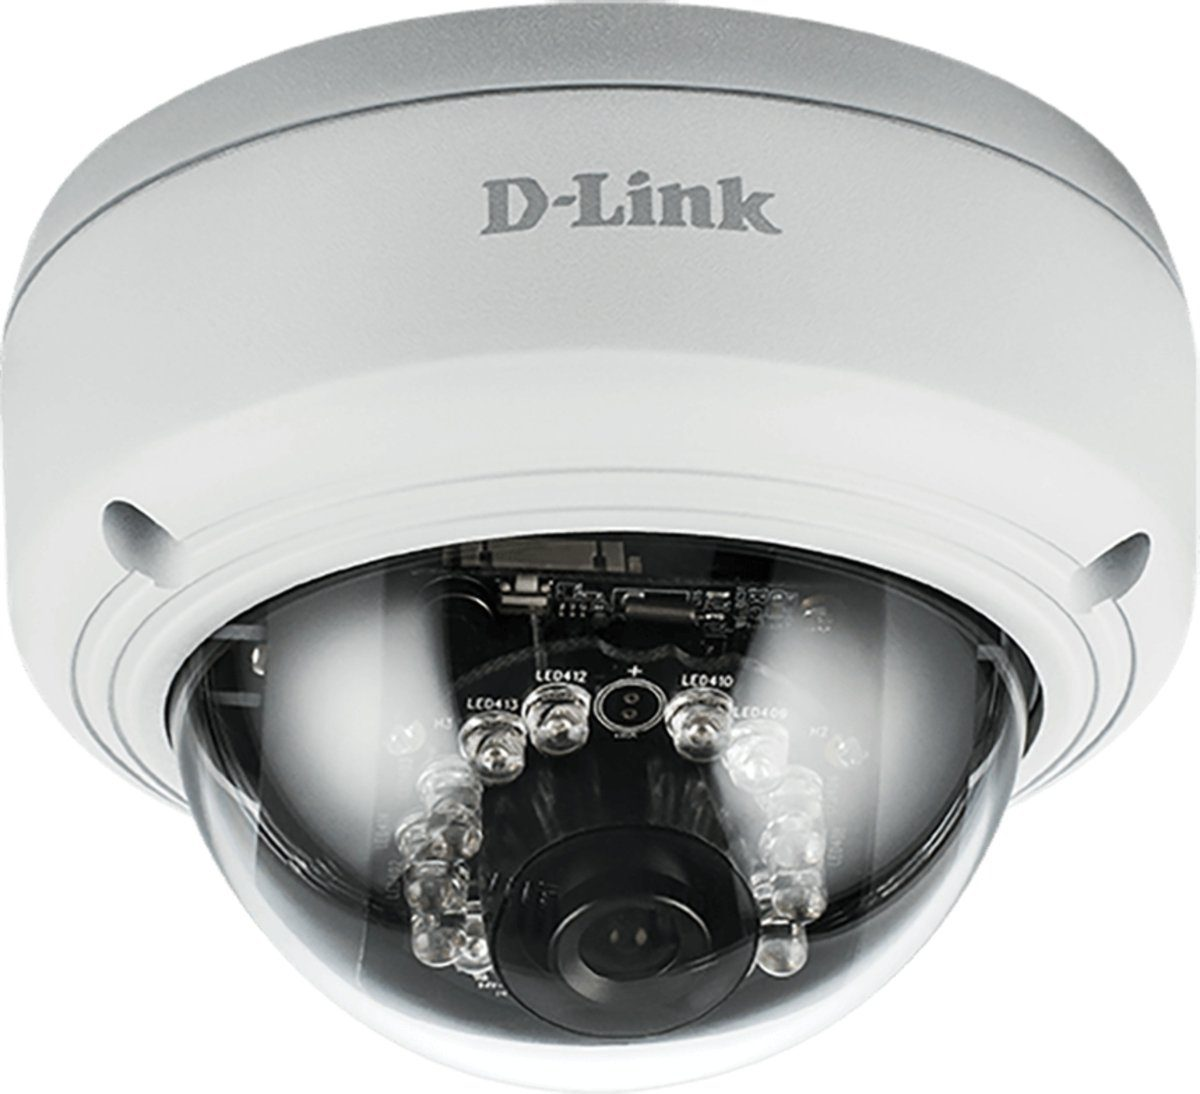 D-Link IP-Kamera »PoE Dome Vigilance Full HD Outdoor Camera«